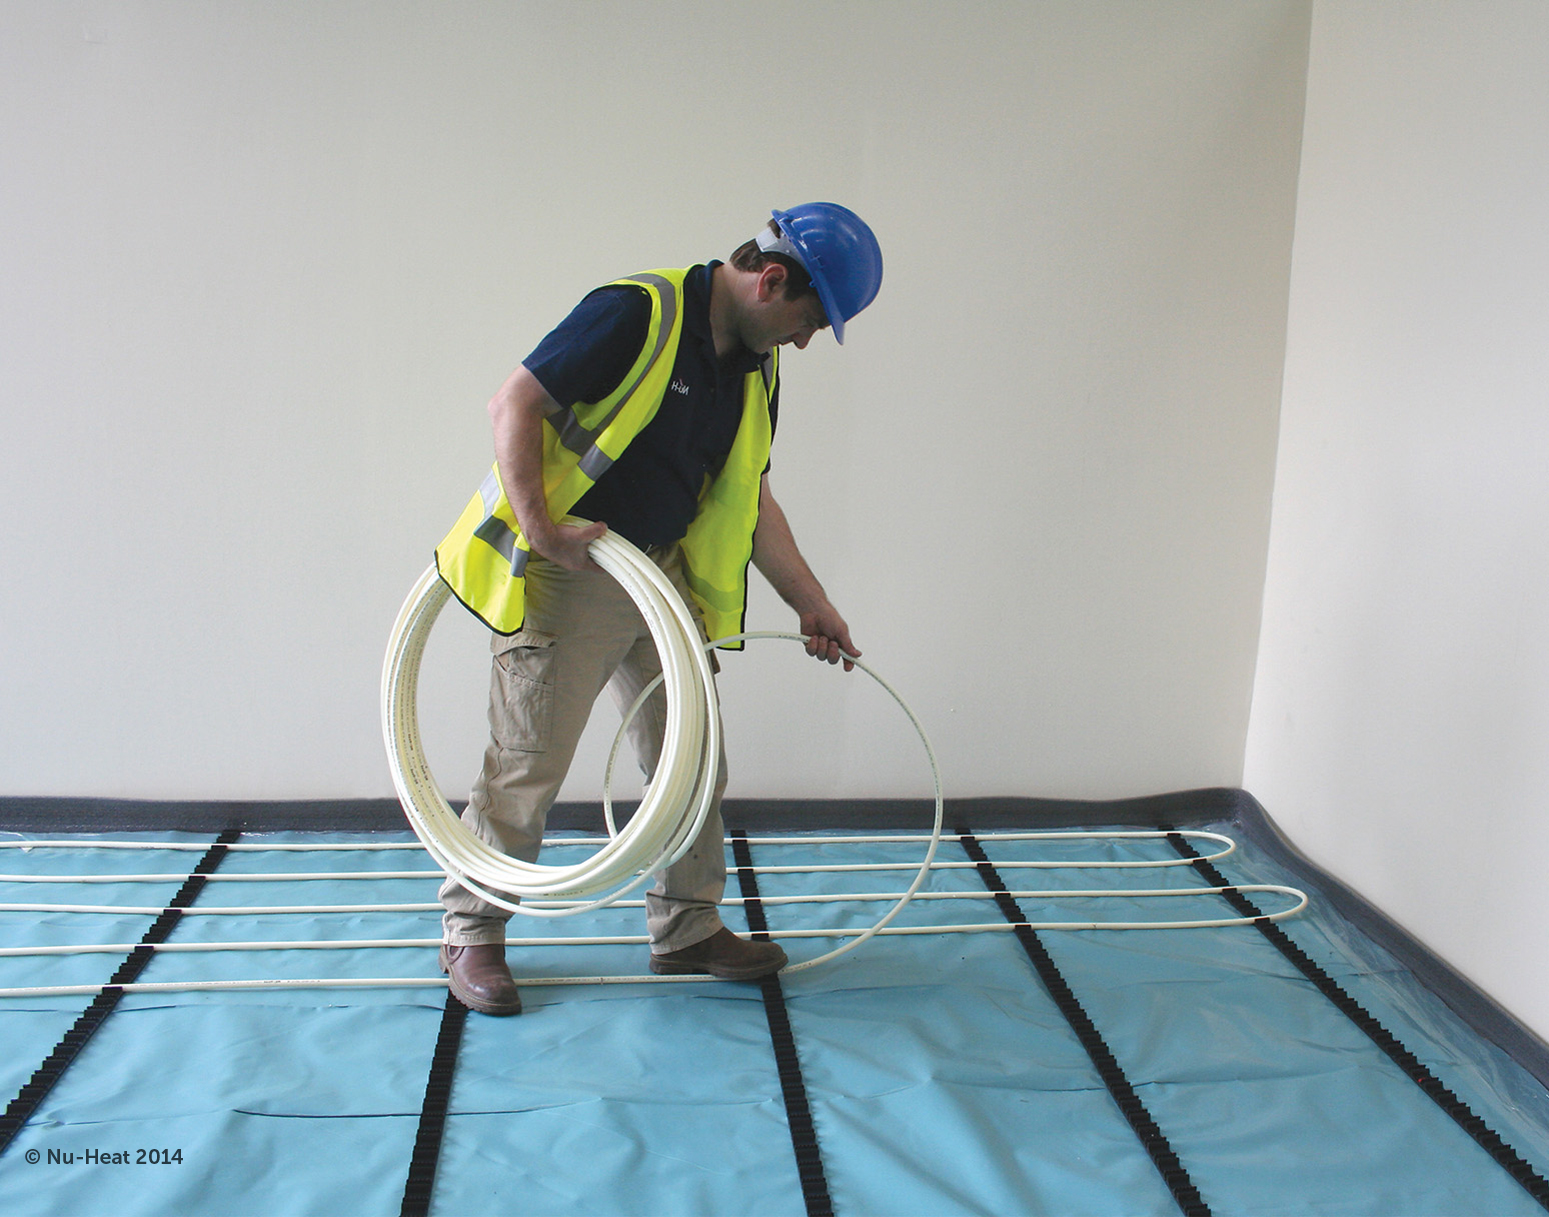 Laying wet underfloor heating pipes